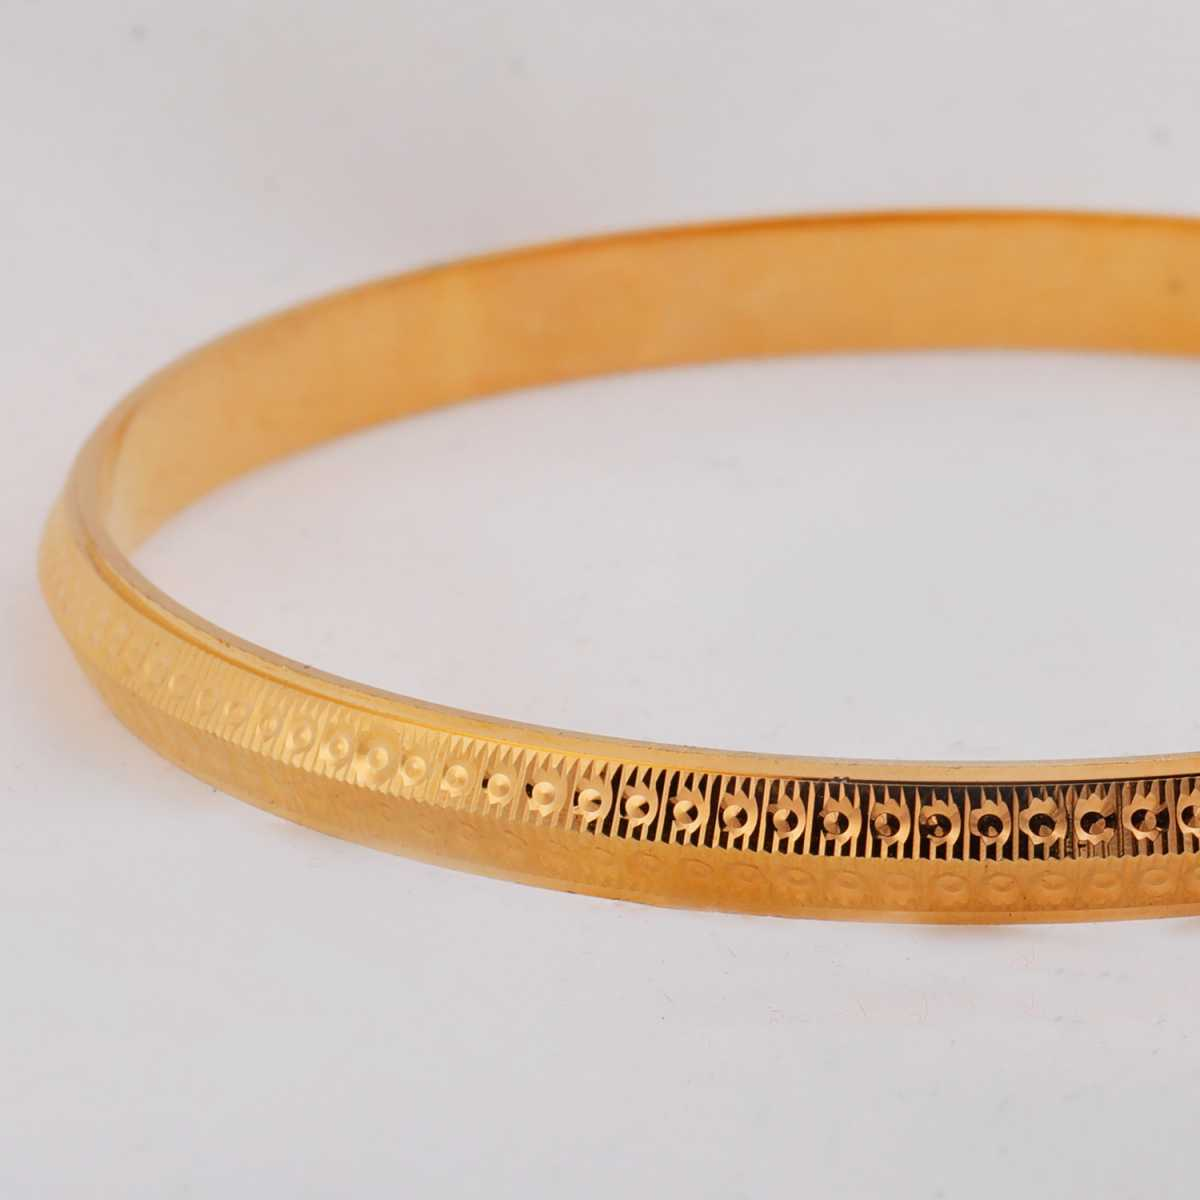 Silver Shine Gold Plated Metal Thin Round Ridged  Punjabi Kada Bangle Bracelet For Boys and Mens.